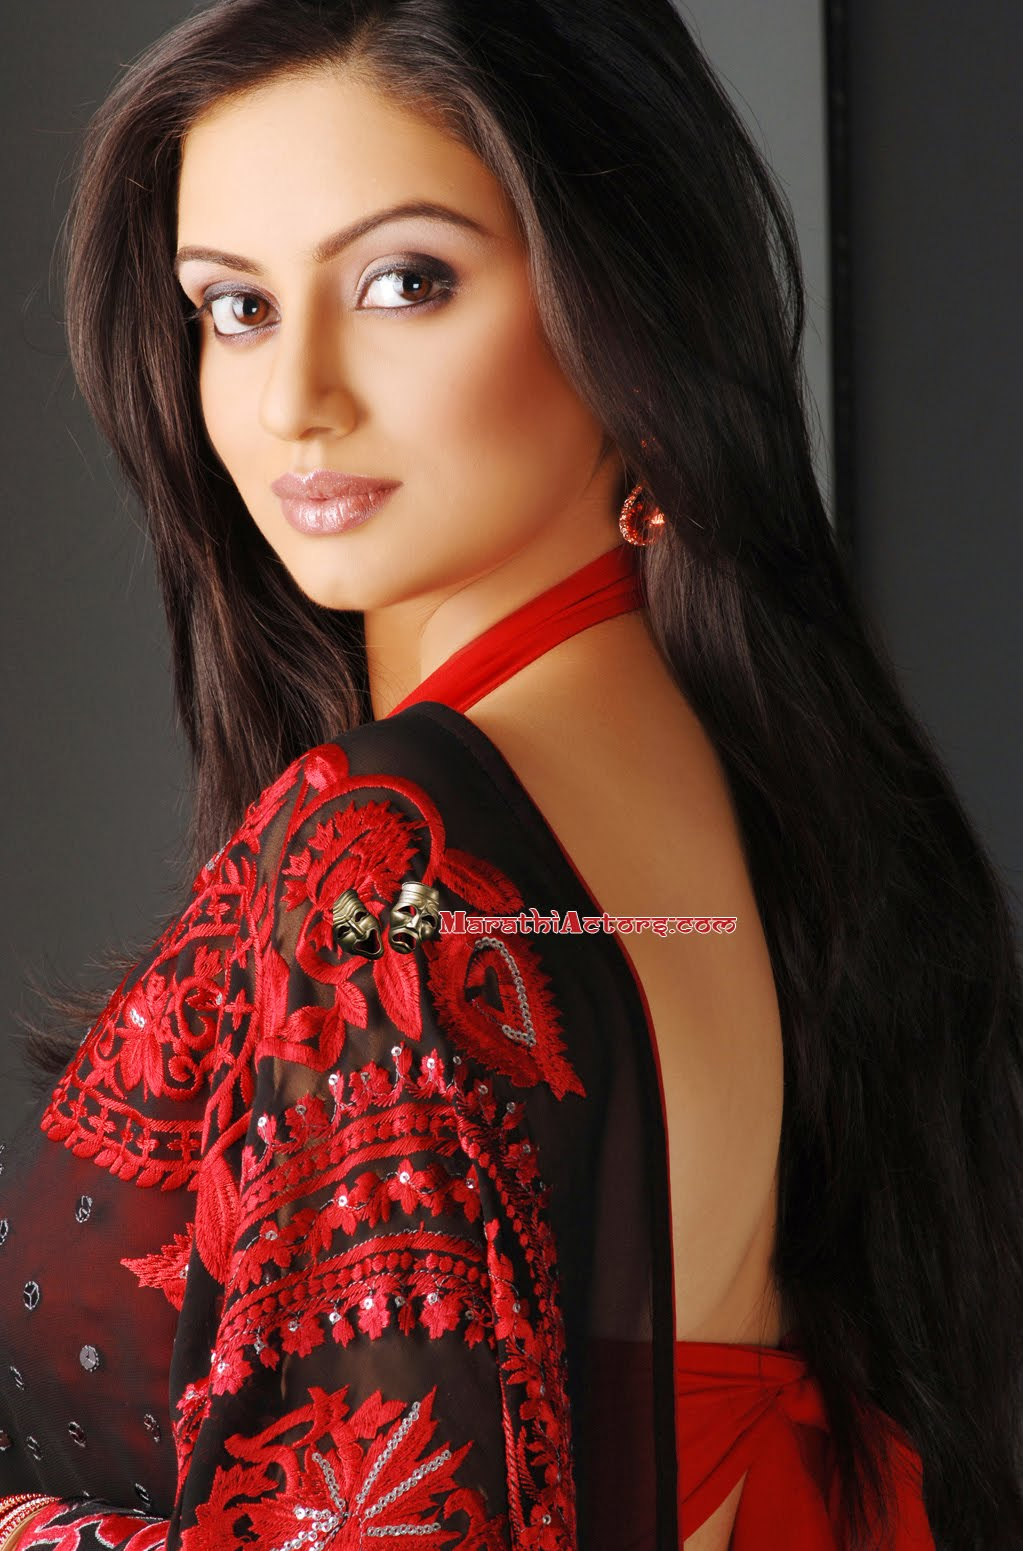 Actress hot images wallpapers marathi actress images marathi actress images thecheapjerseys Choice Image